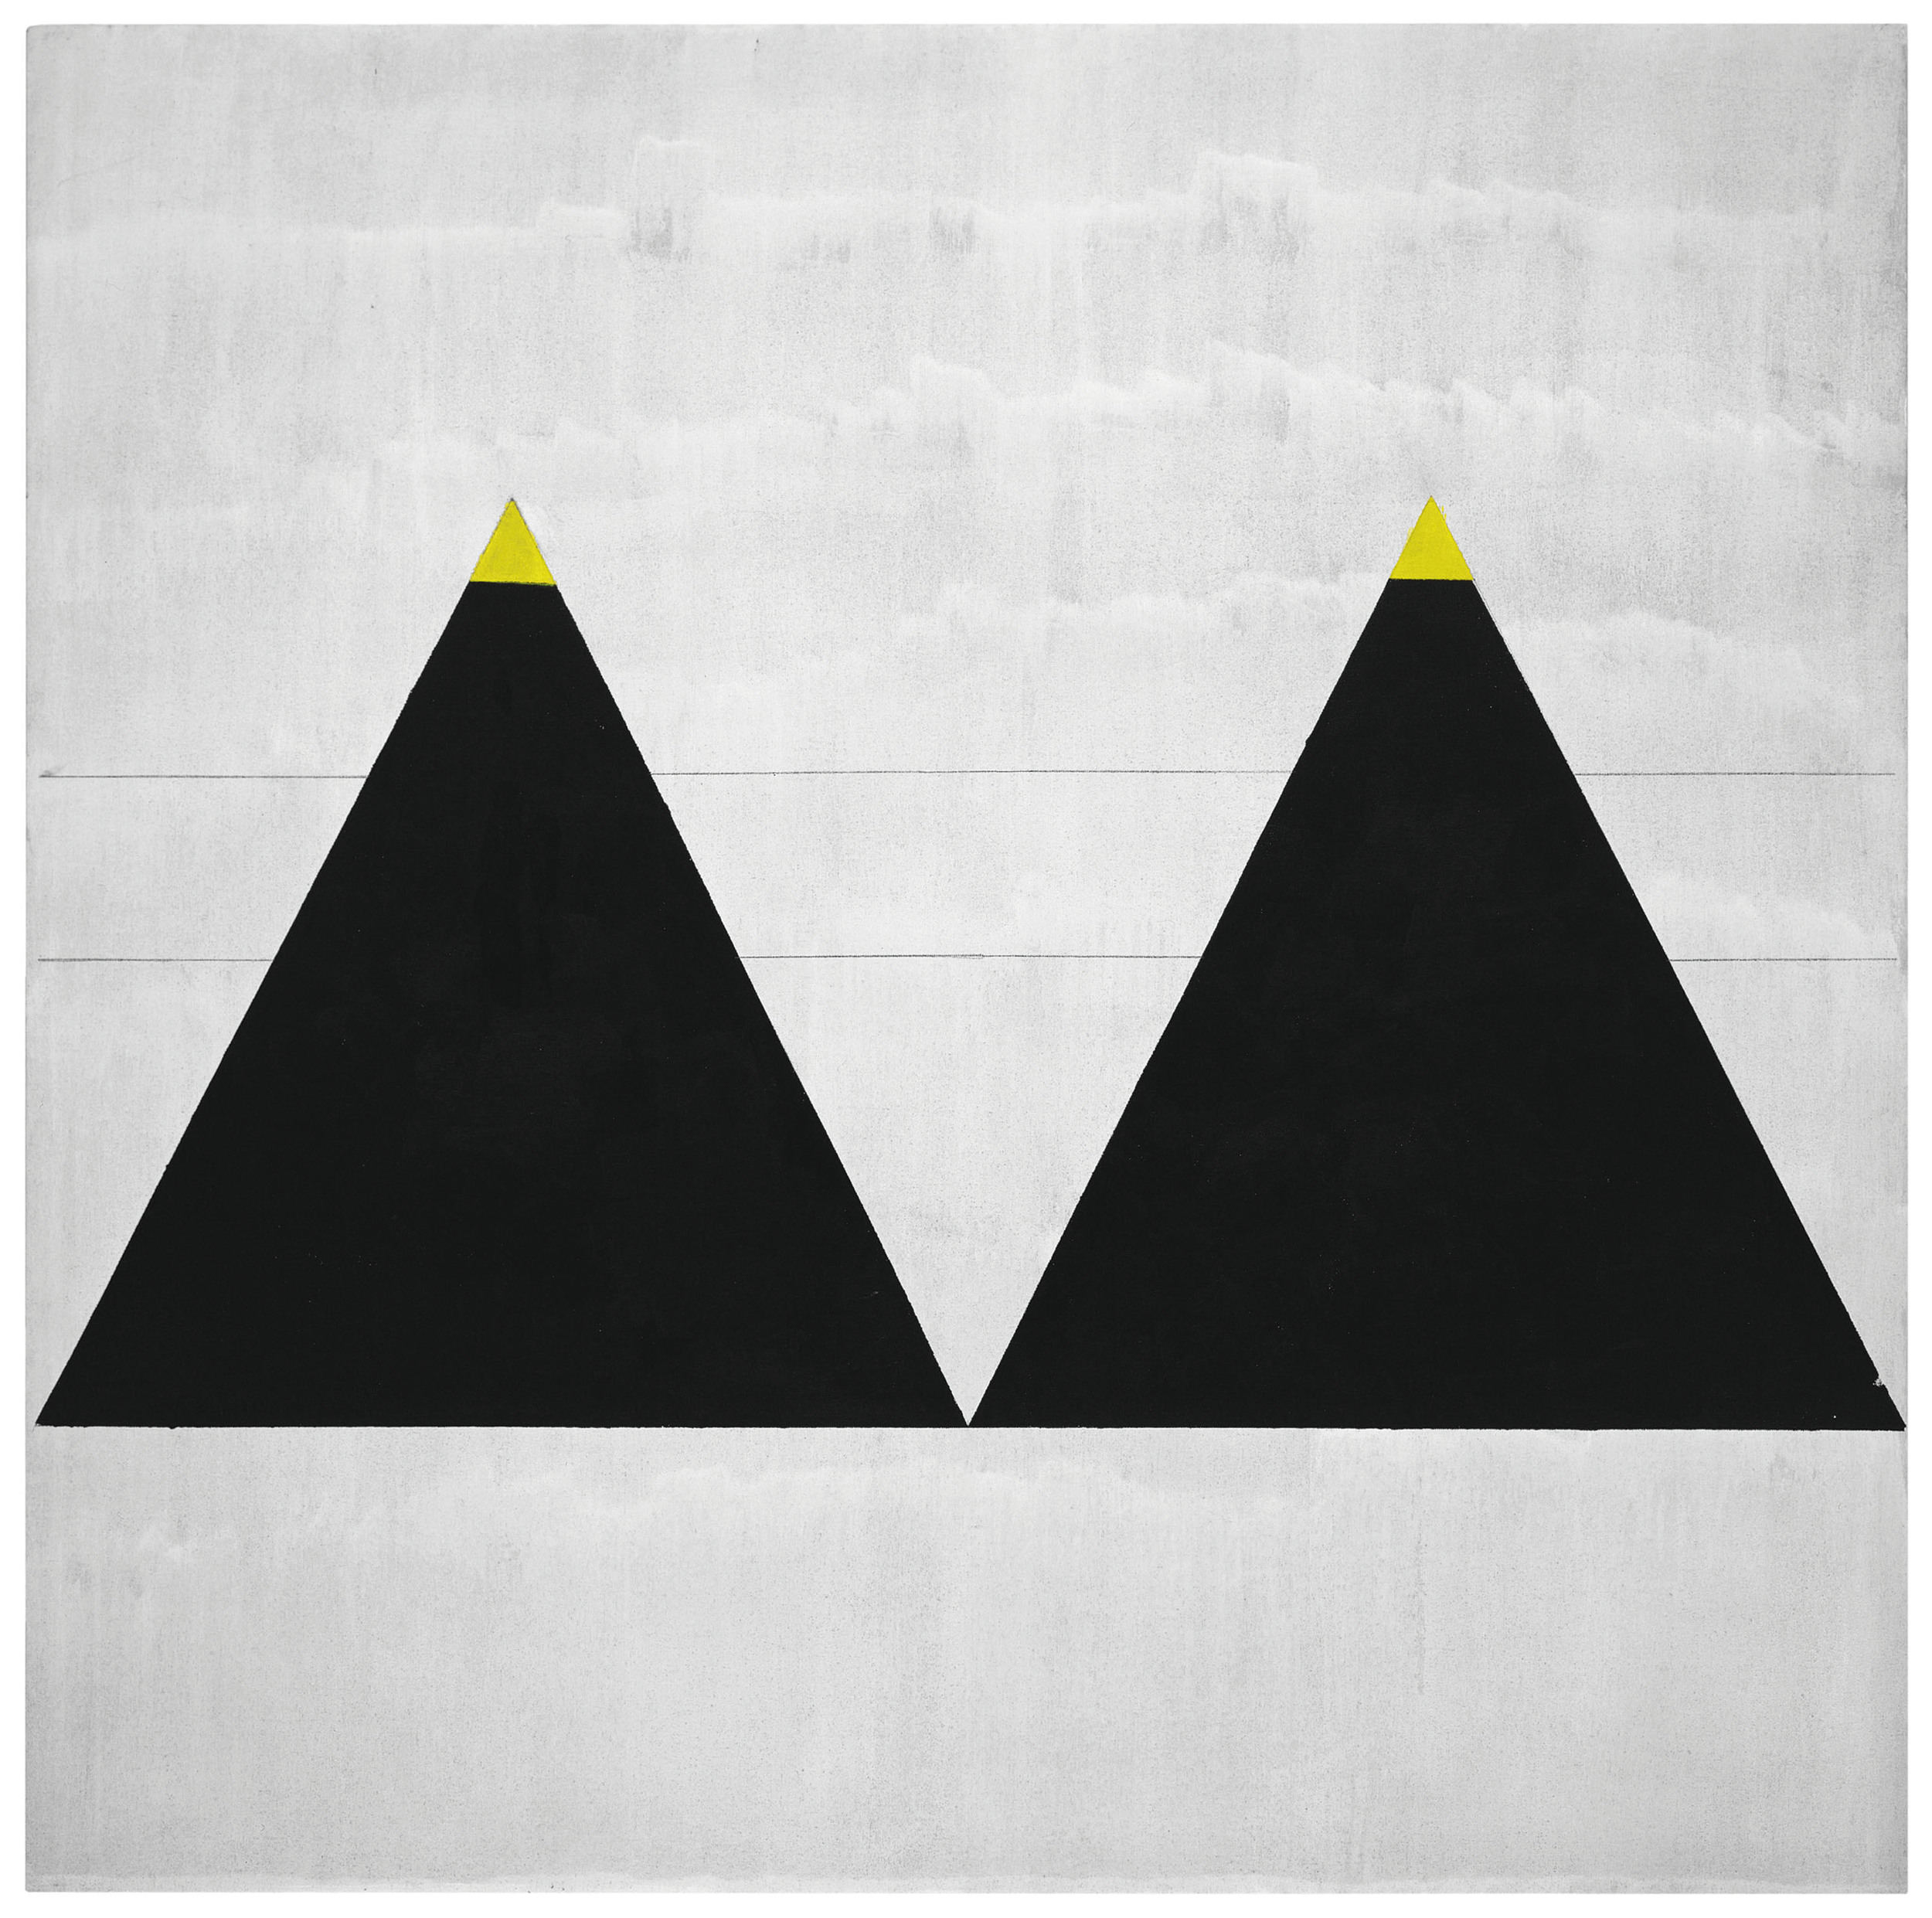 Untitled #1 2003 by Agnes Martin. Photographs courtesy of the Estate of Agnes Martin/Tate Modern